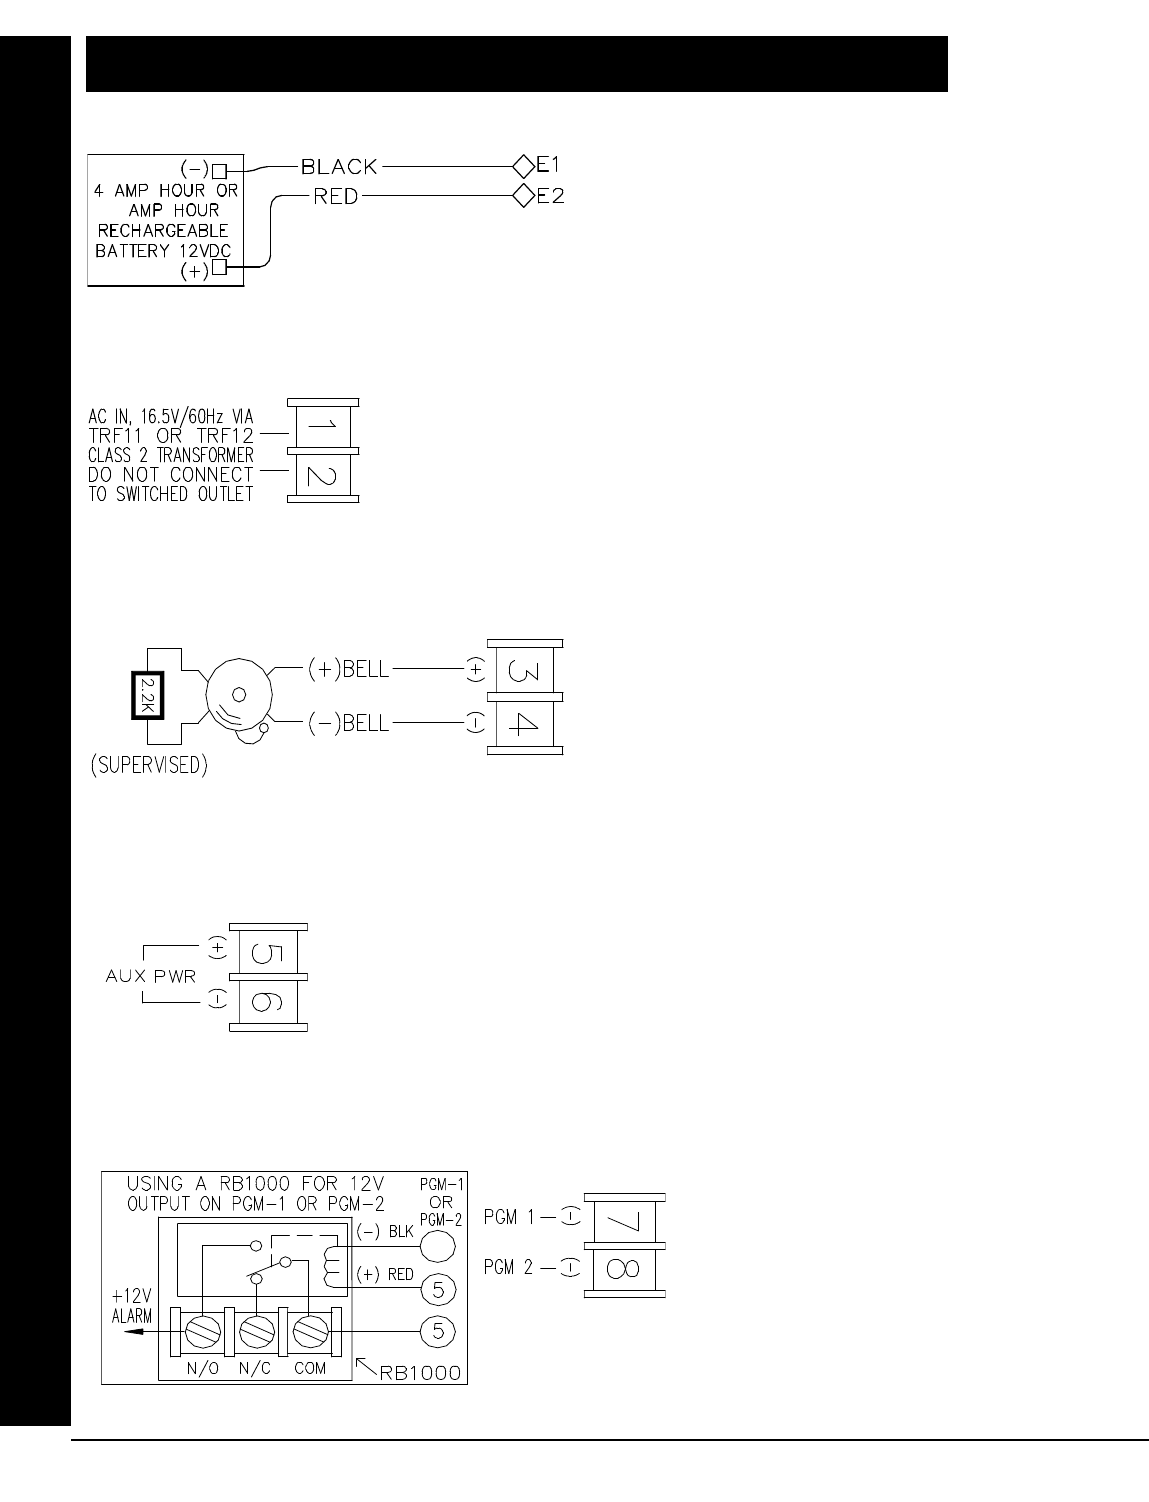 wiring diagram gem car wiring image wiring diagram p1664 wiring diagram for gem p1664 auto wiring diagram schematic on wiring diagram gem car